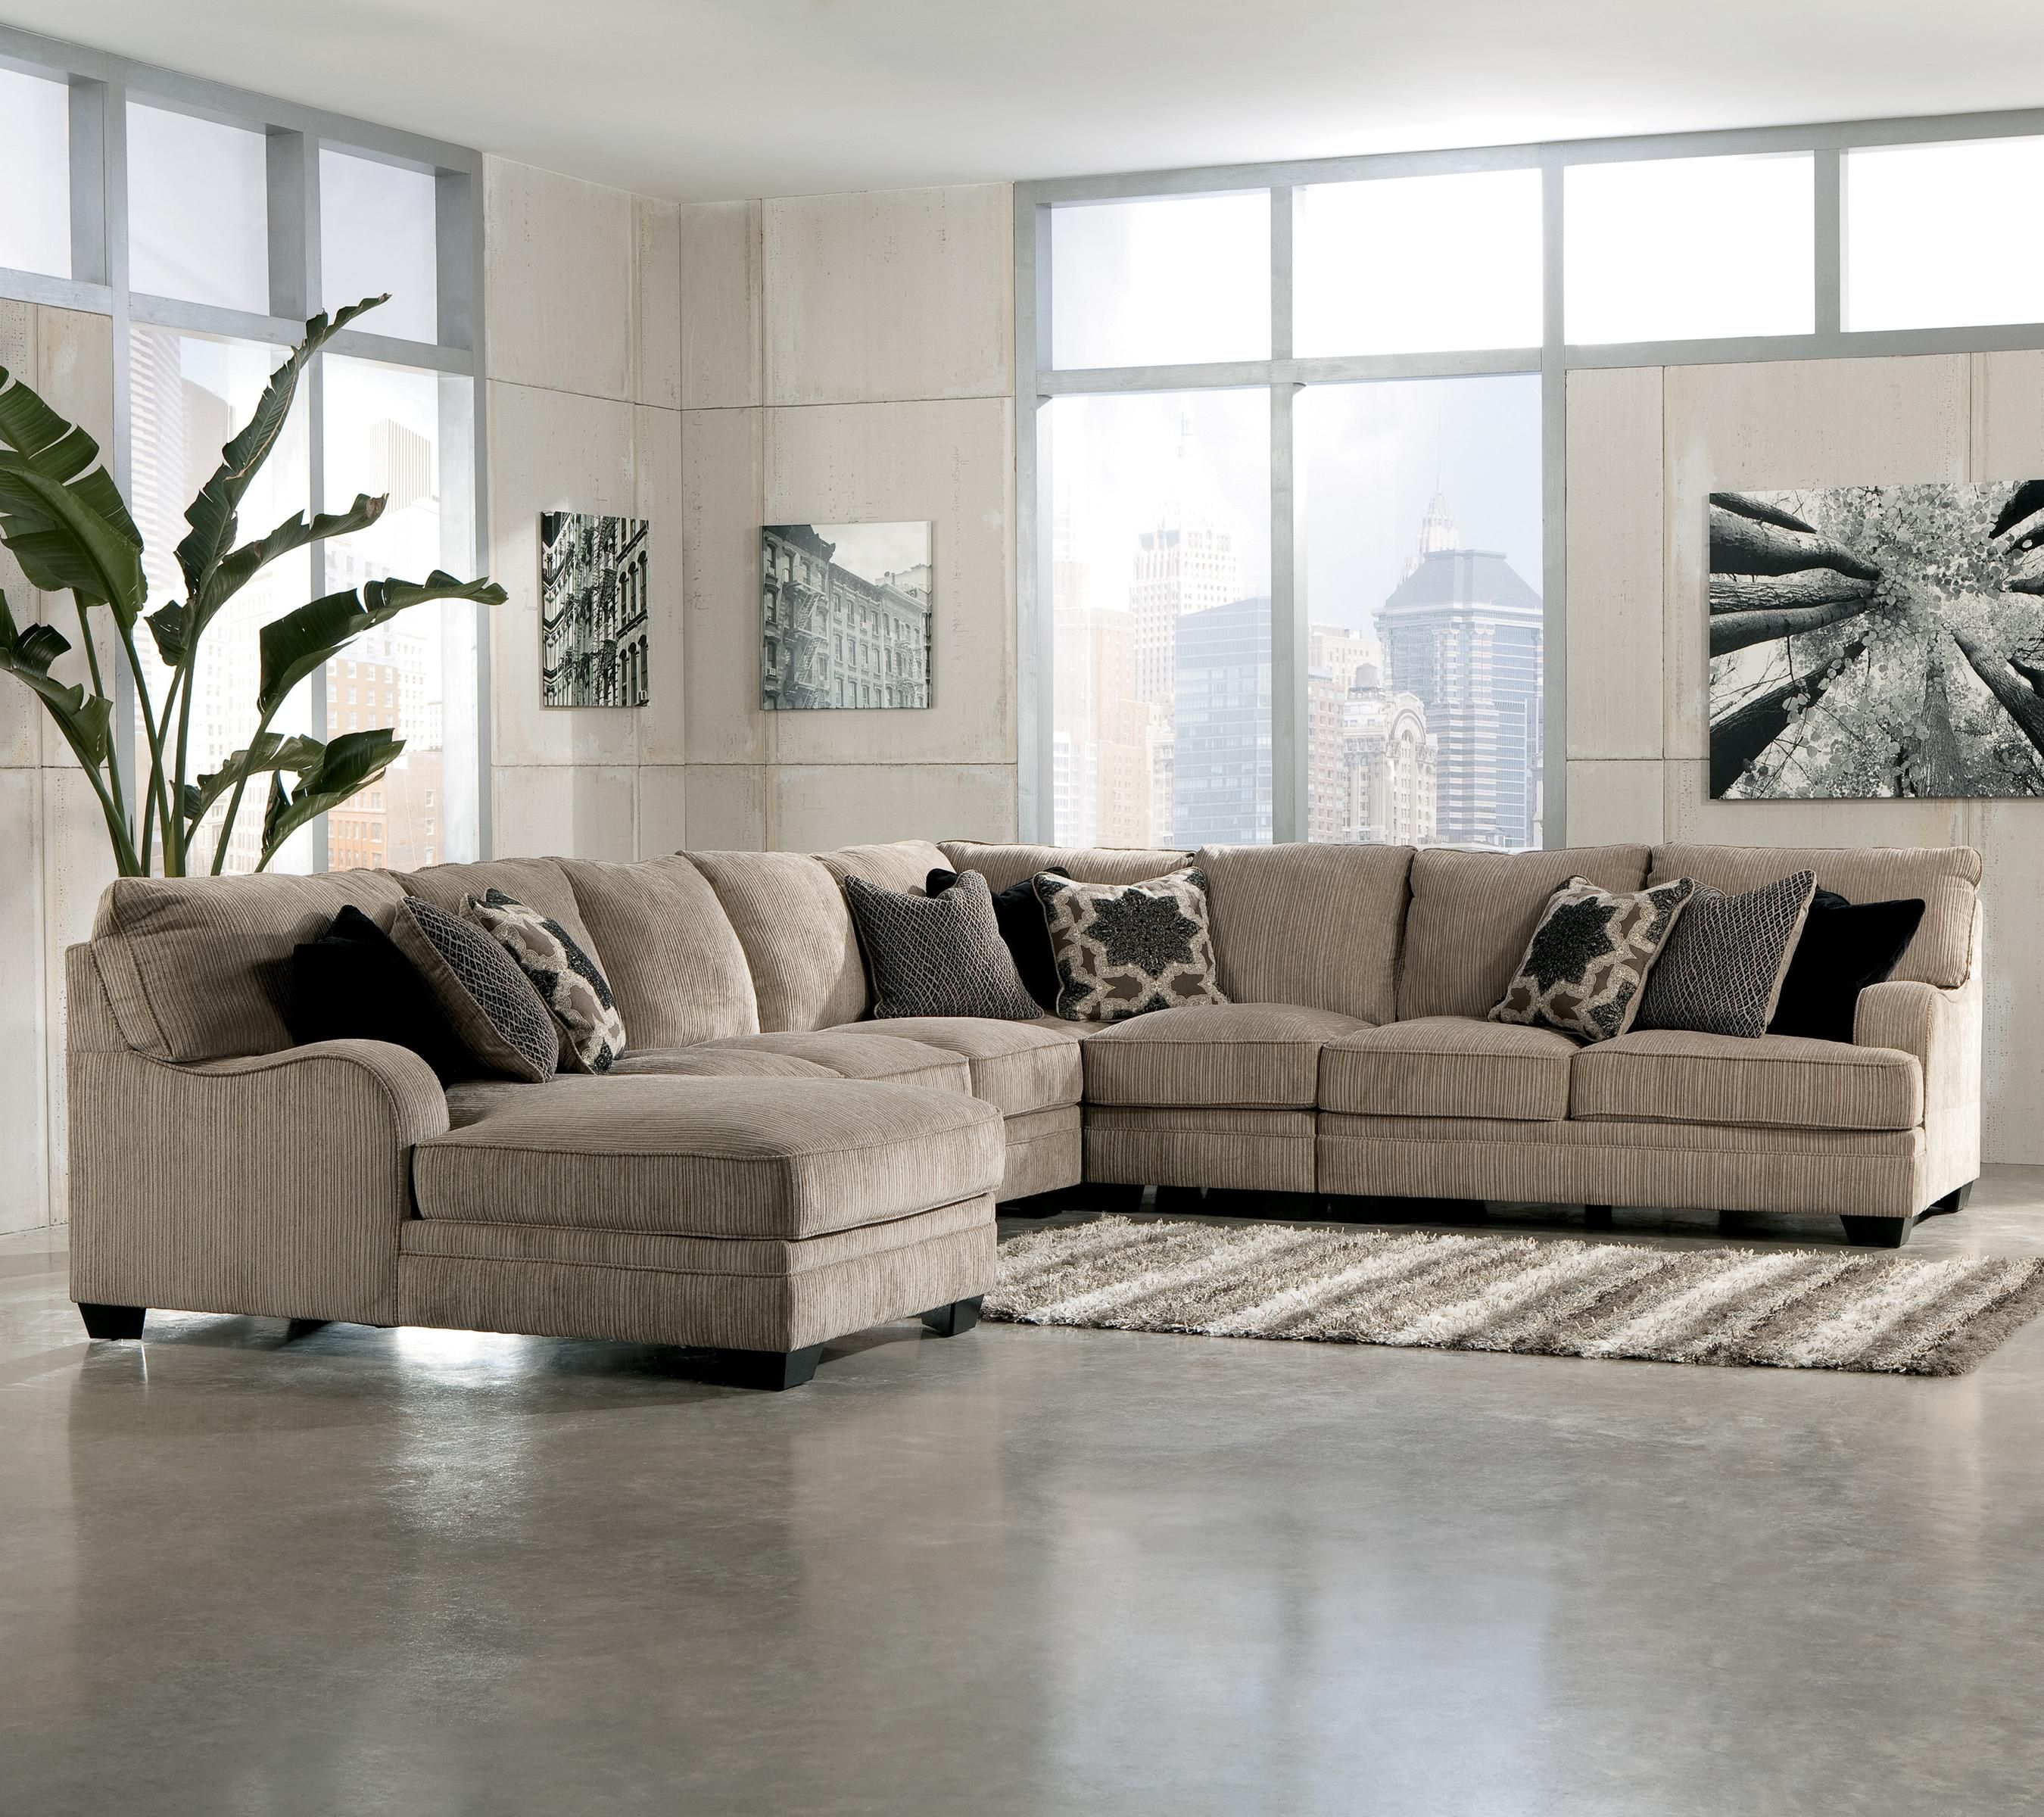 Signature Design by Ashley Katisha - Platinum Sectional Sofa with Left Chaise - Miskelly Furniture - Sofa Sectional Jackson Mississippi : ashley sofa sectional - Sectionals, Sofas & Couches